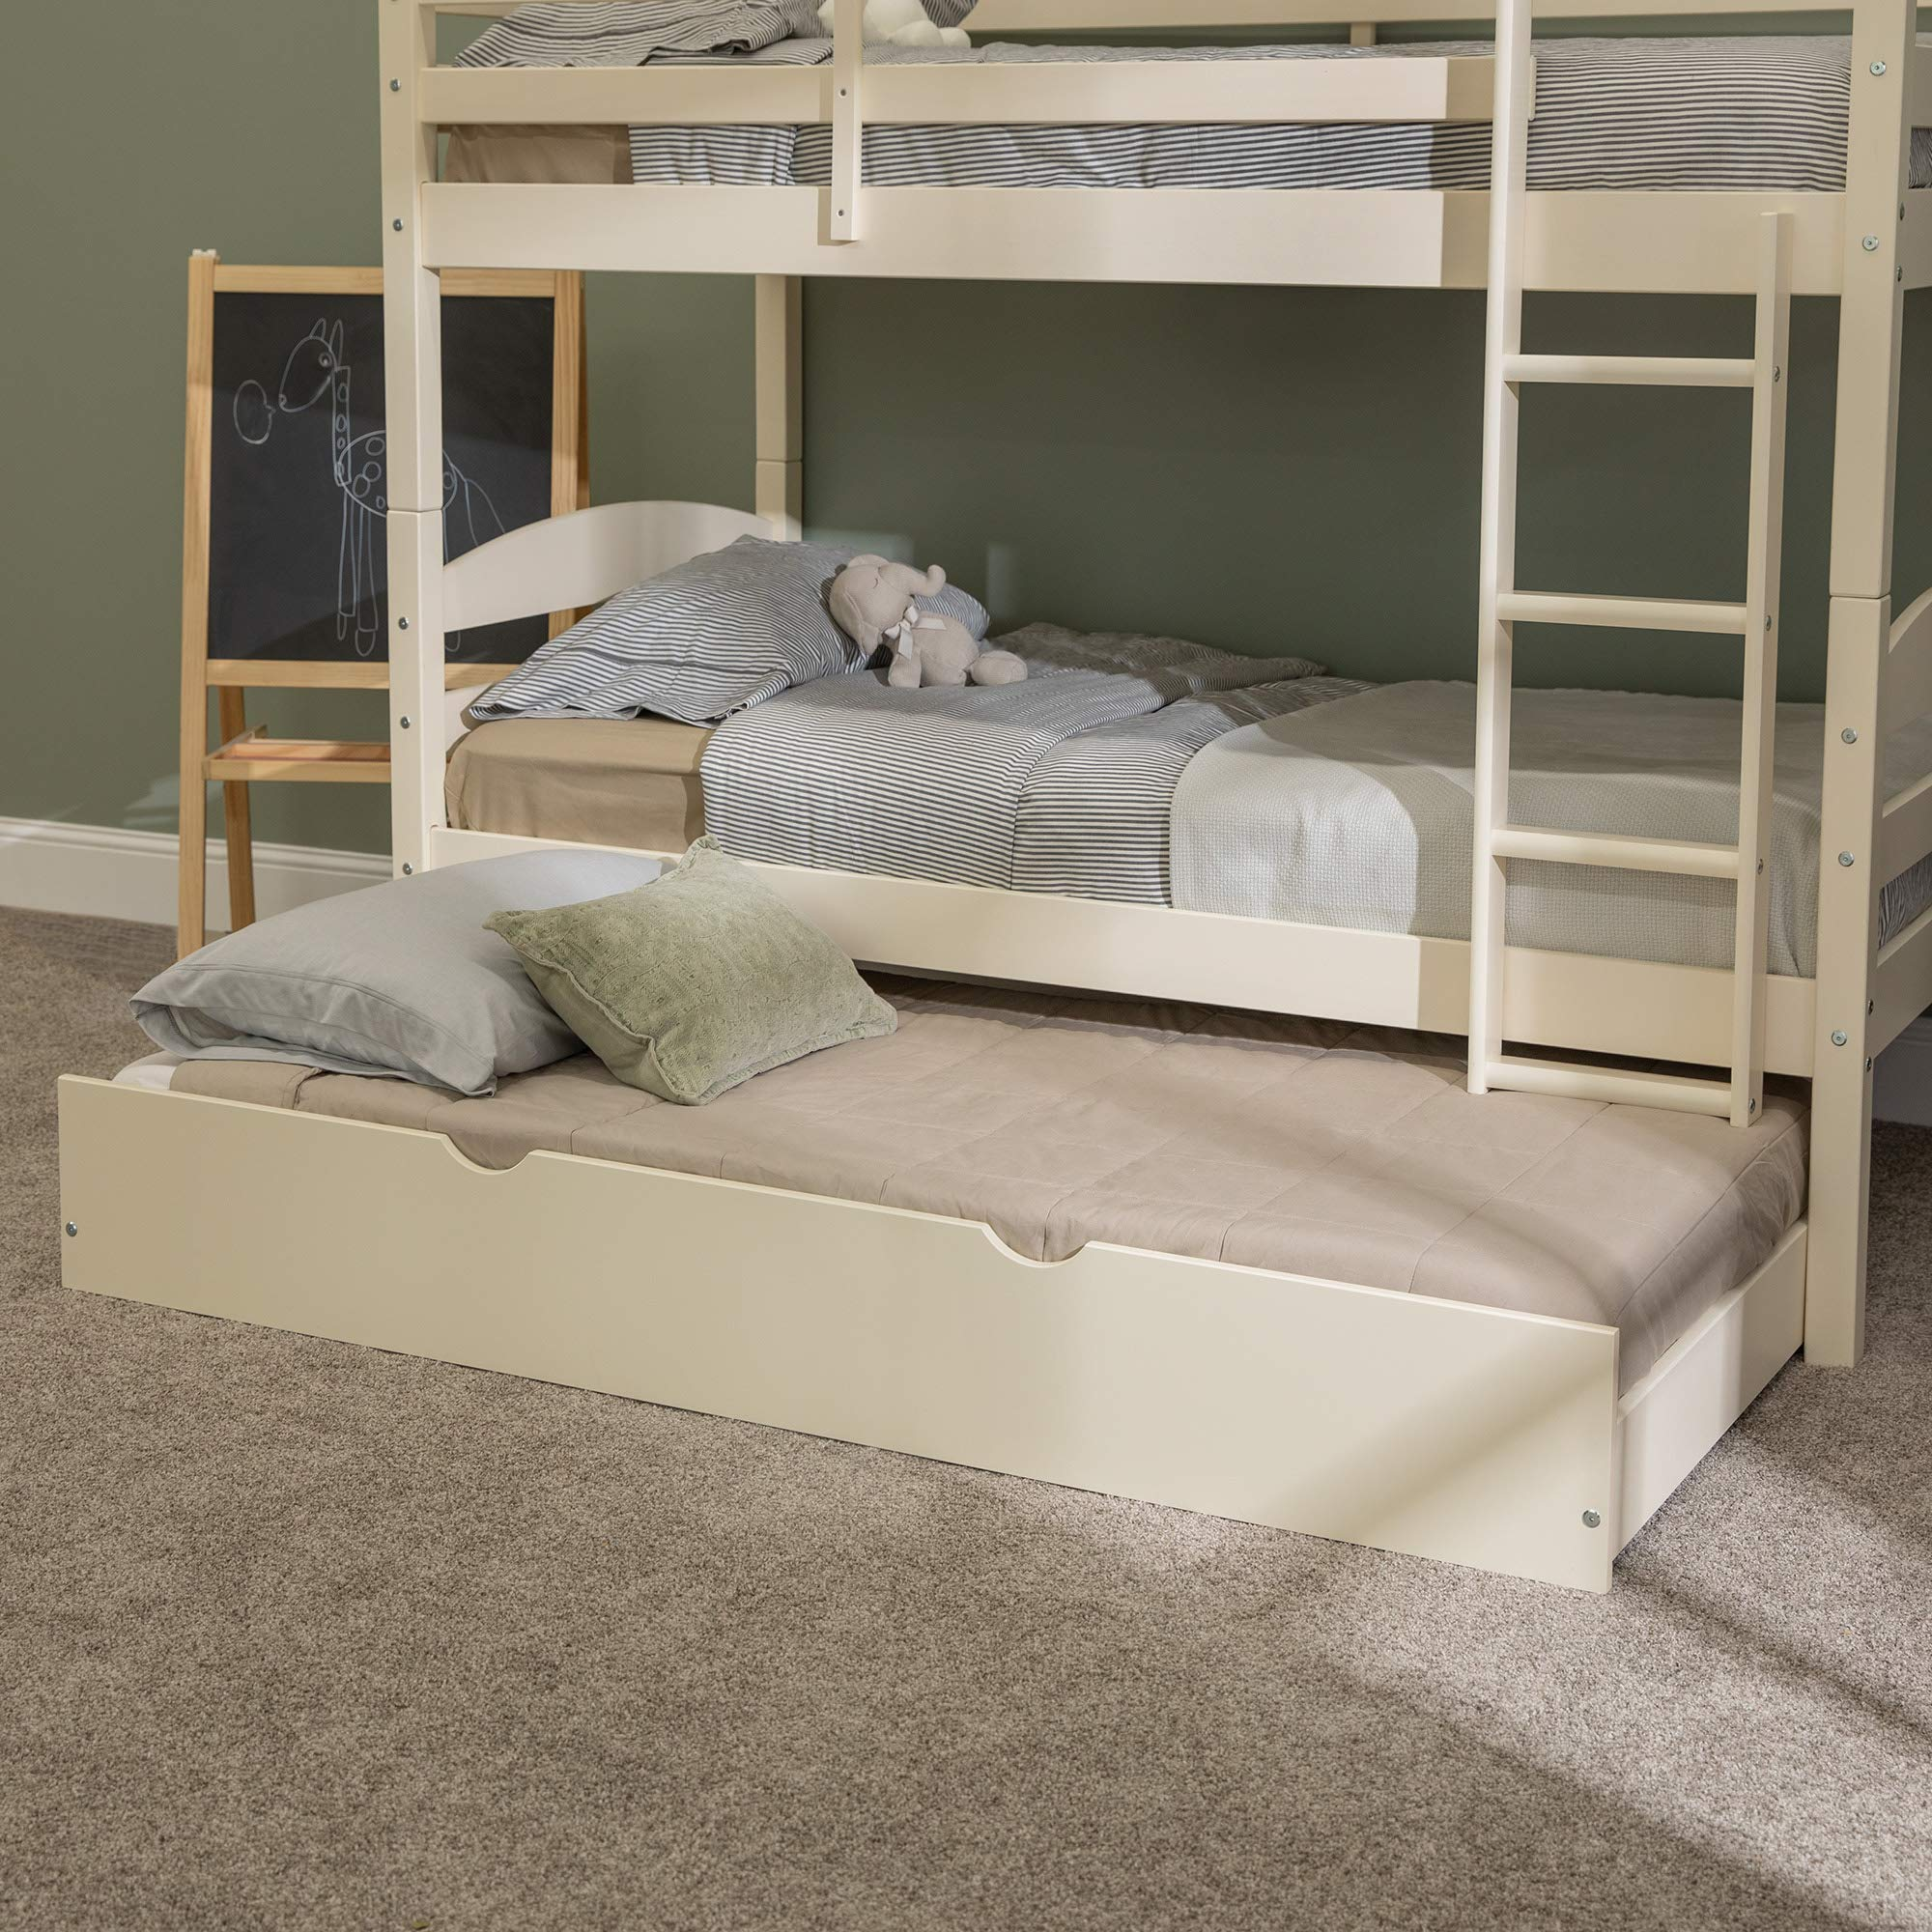 Walker Edison Furniture Company Solid Wood Twin Trundle Kids Bed Frame With Wheels, White